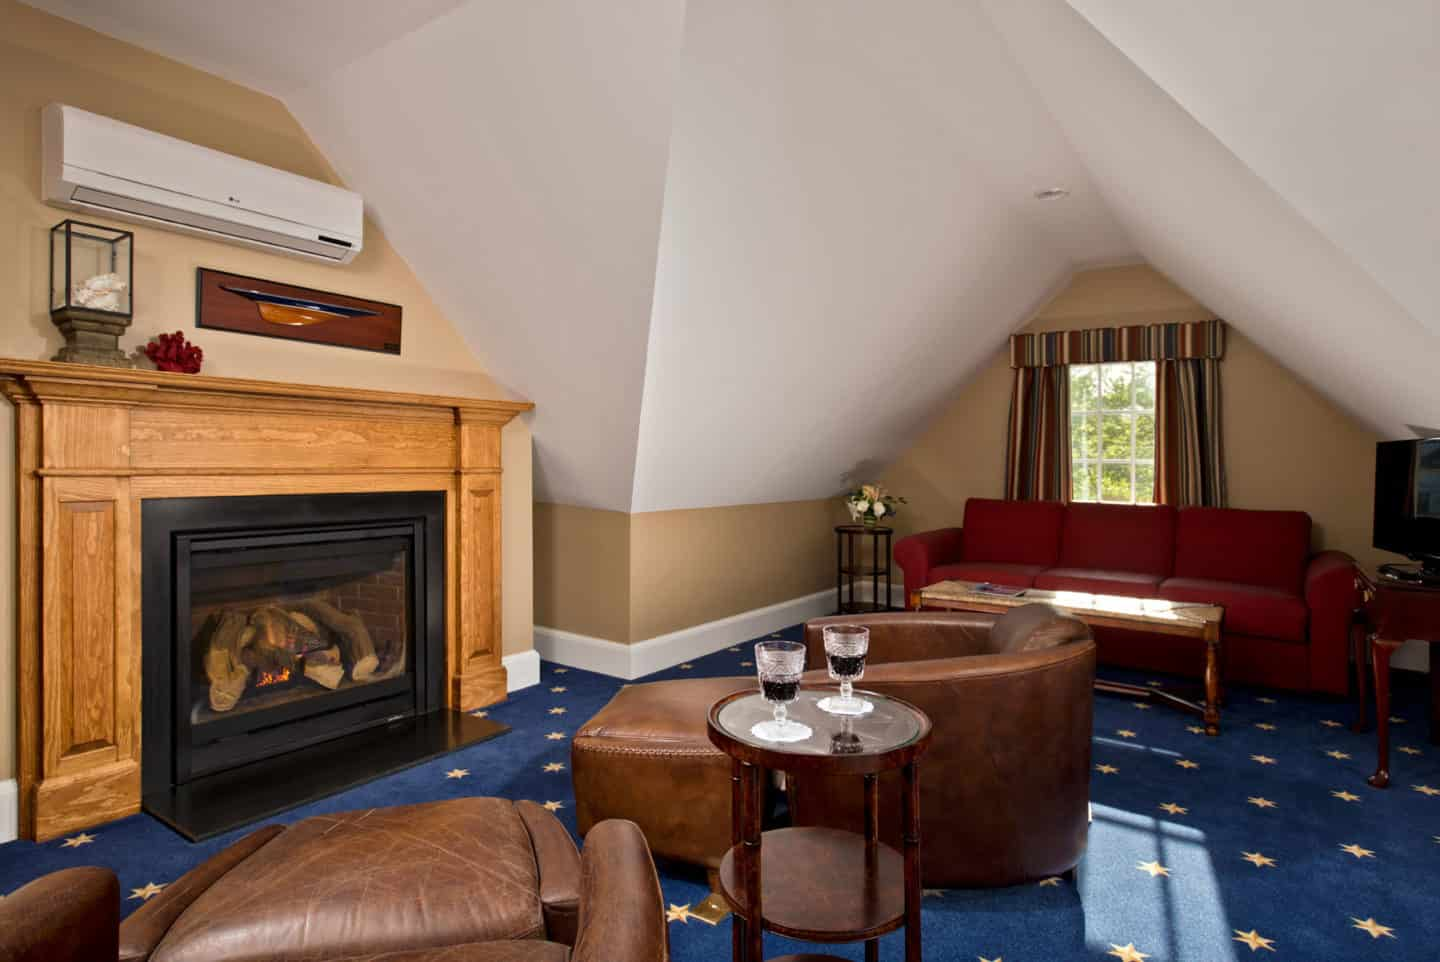 Crow's Nest seating area and fireplace